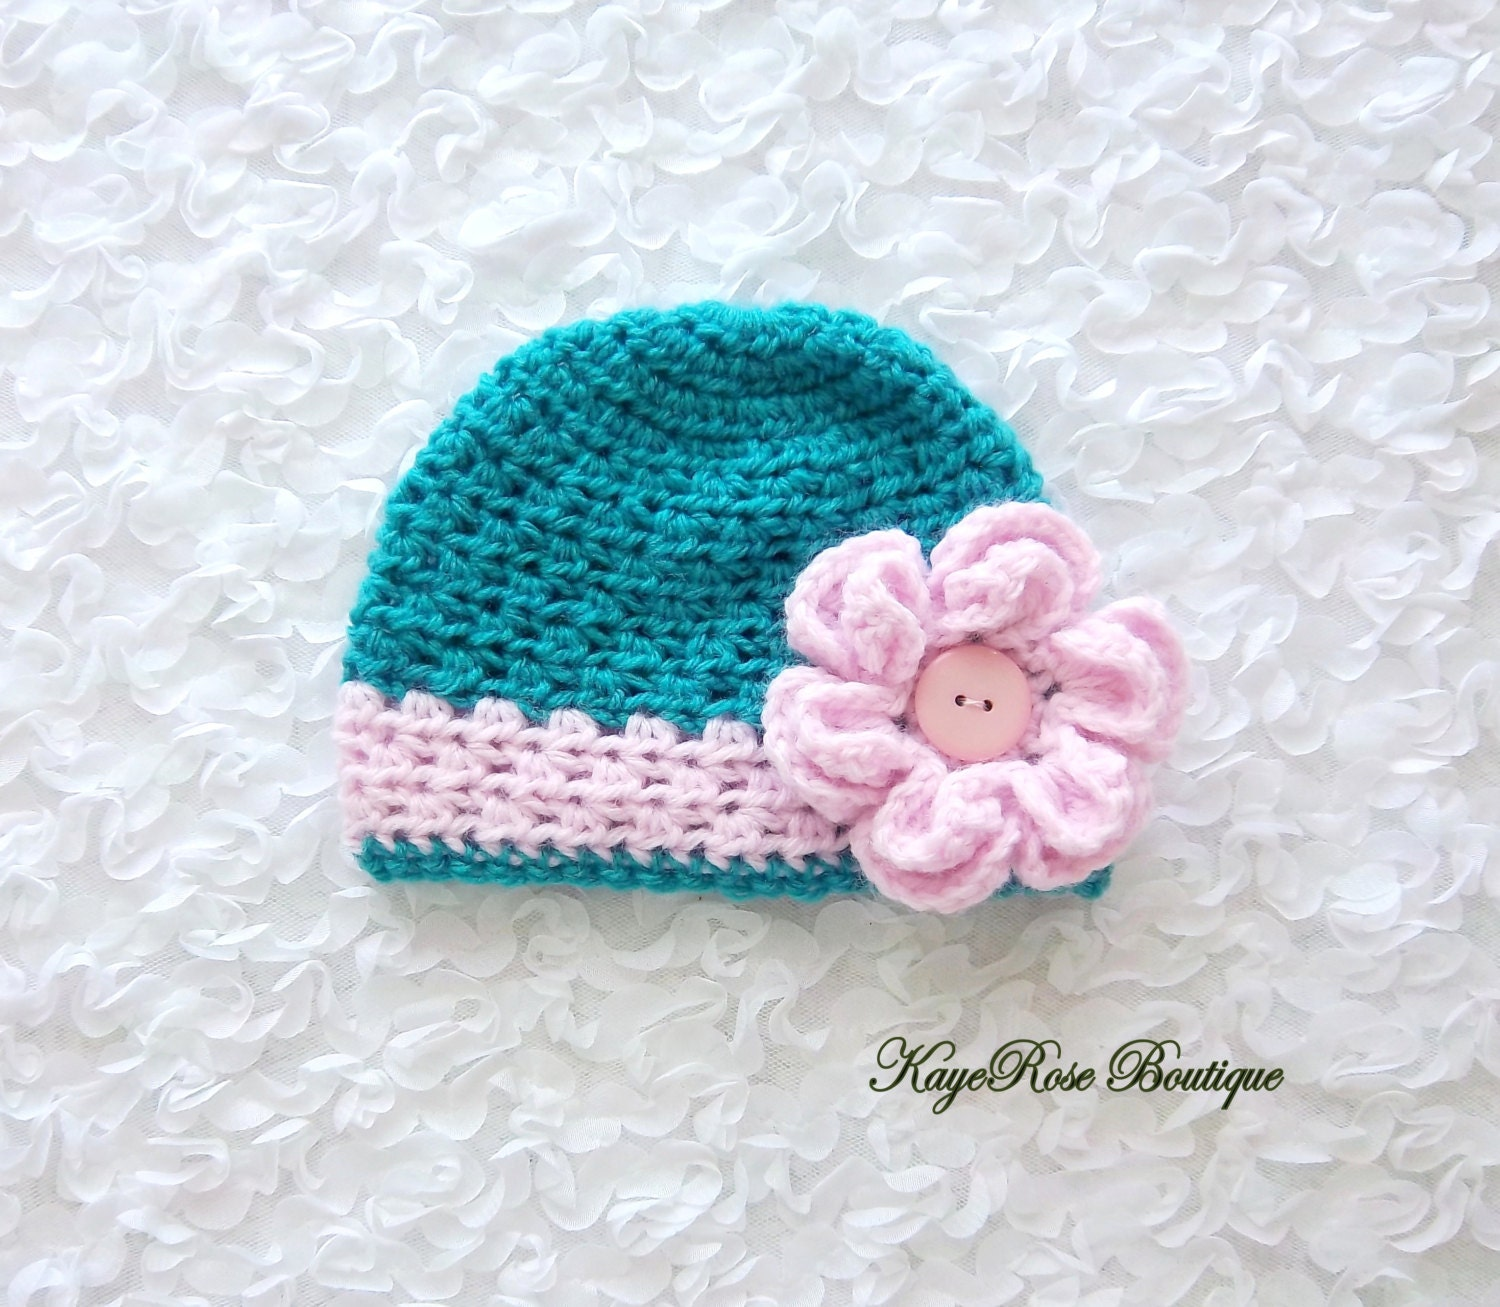 Crochet Hat Pattern For 8 Month Old : Newborn to 3 Month Old Baby Girl Crochet Flower Hat Turquoise